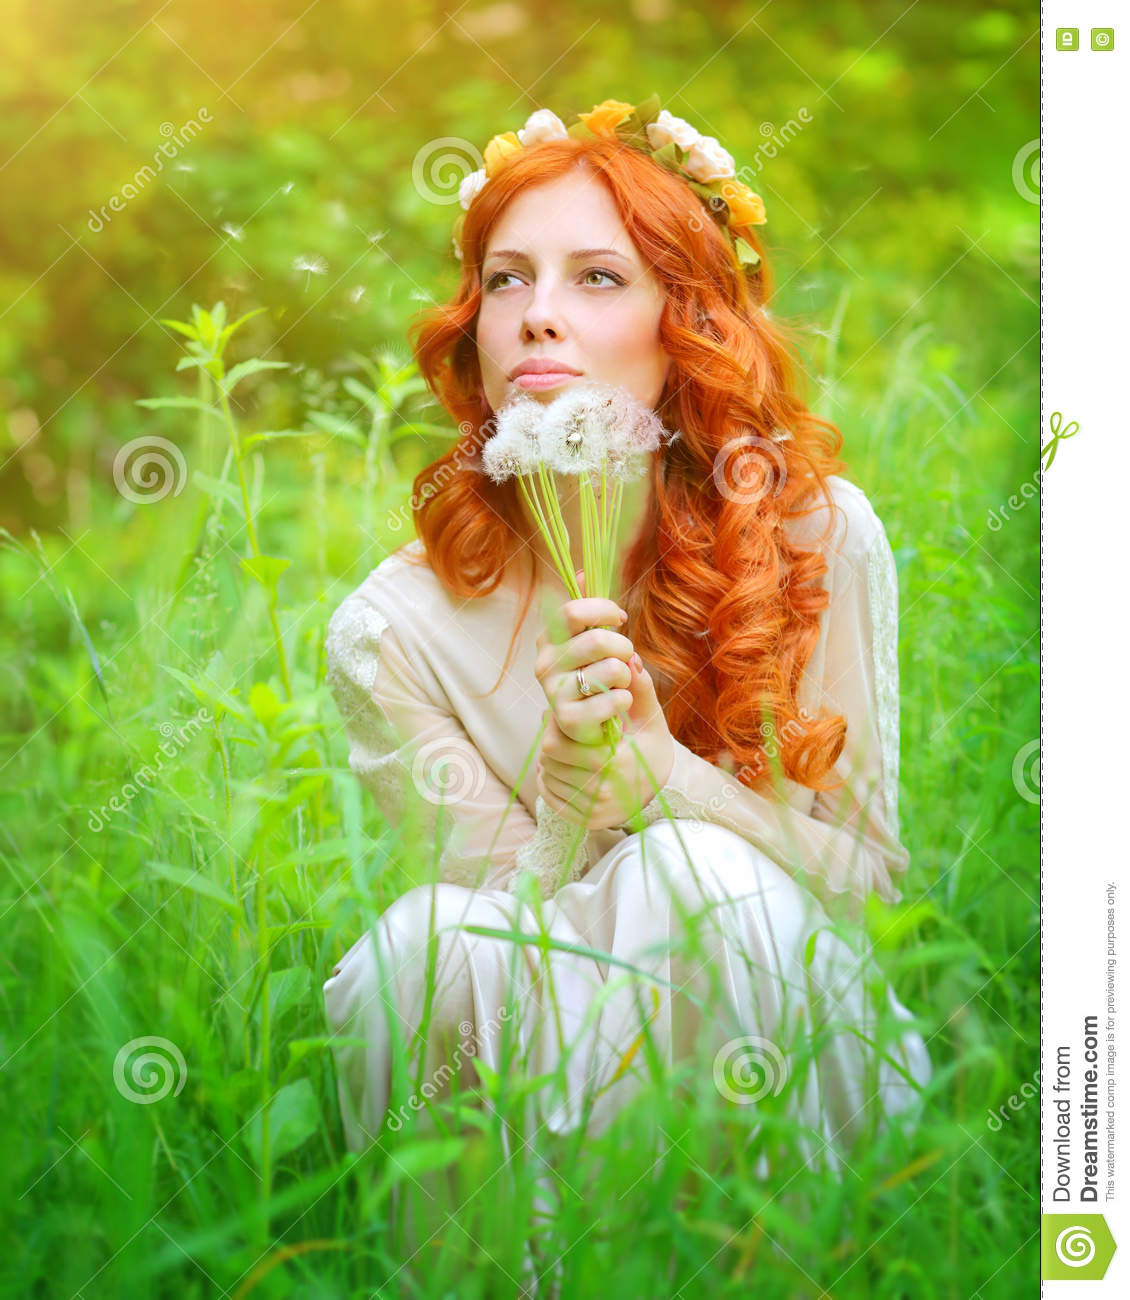 Dreamy girl with a dandelion bouquet